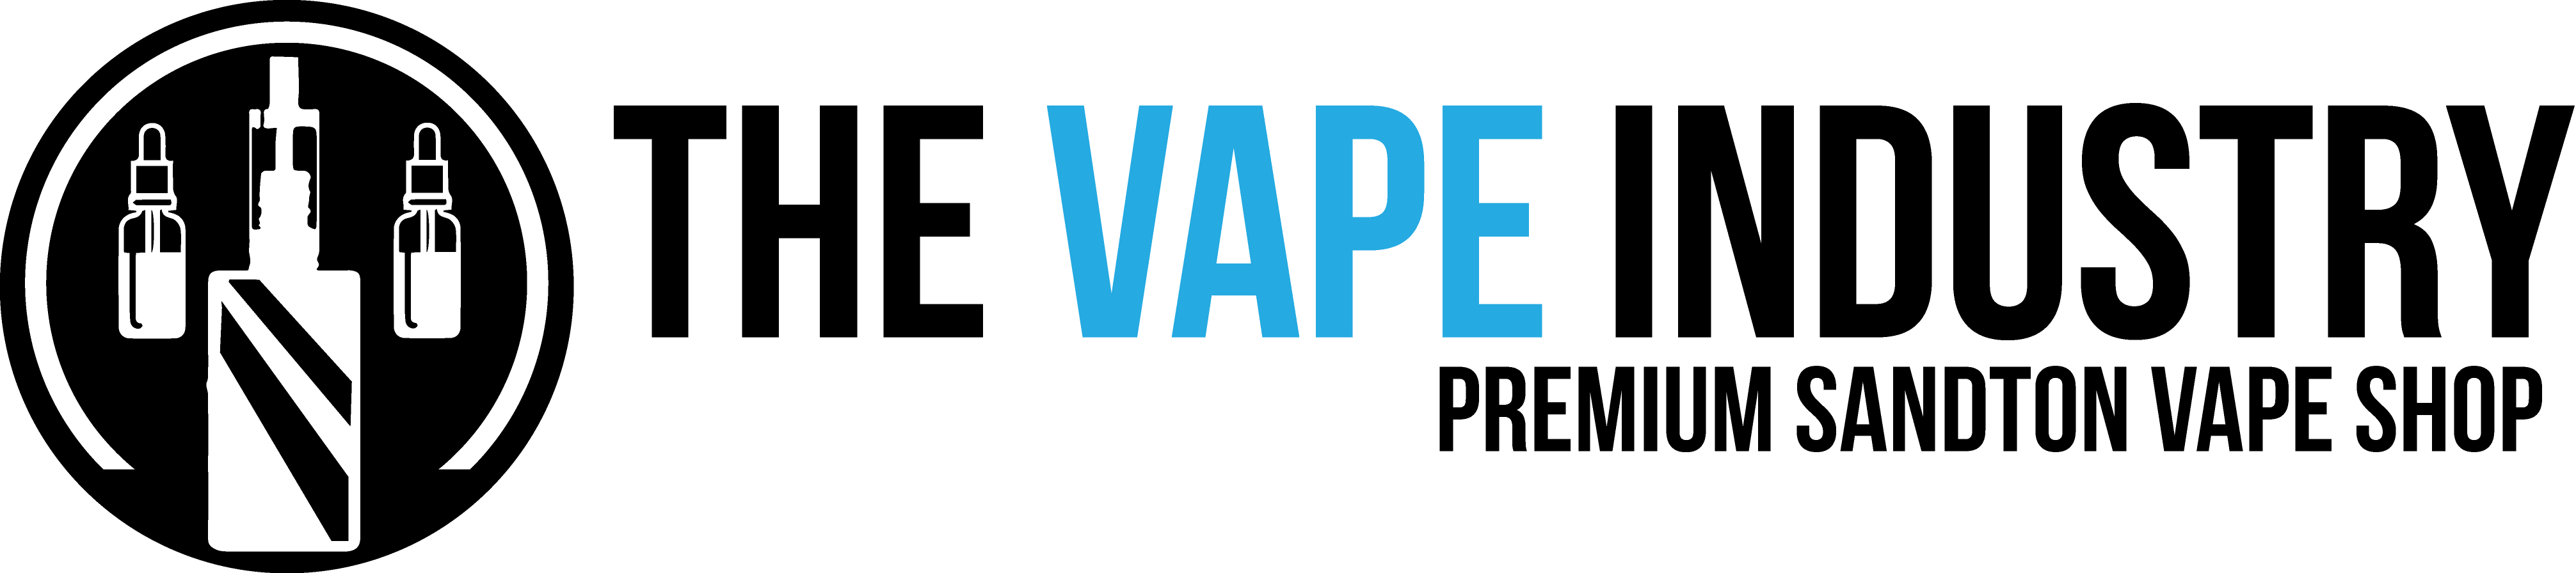 The Vape Industry